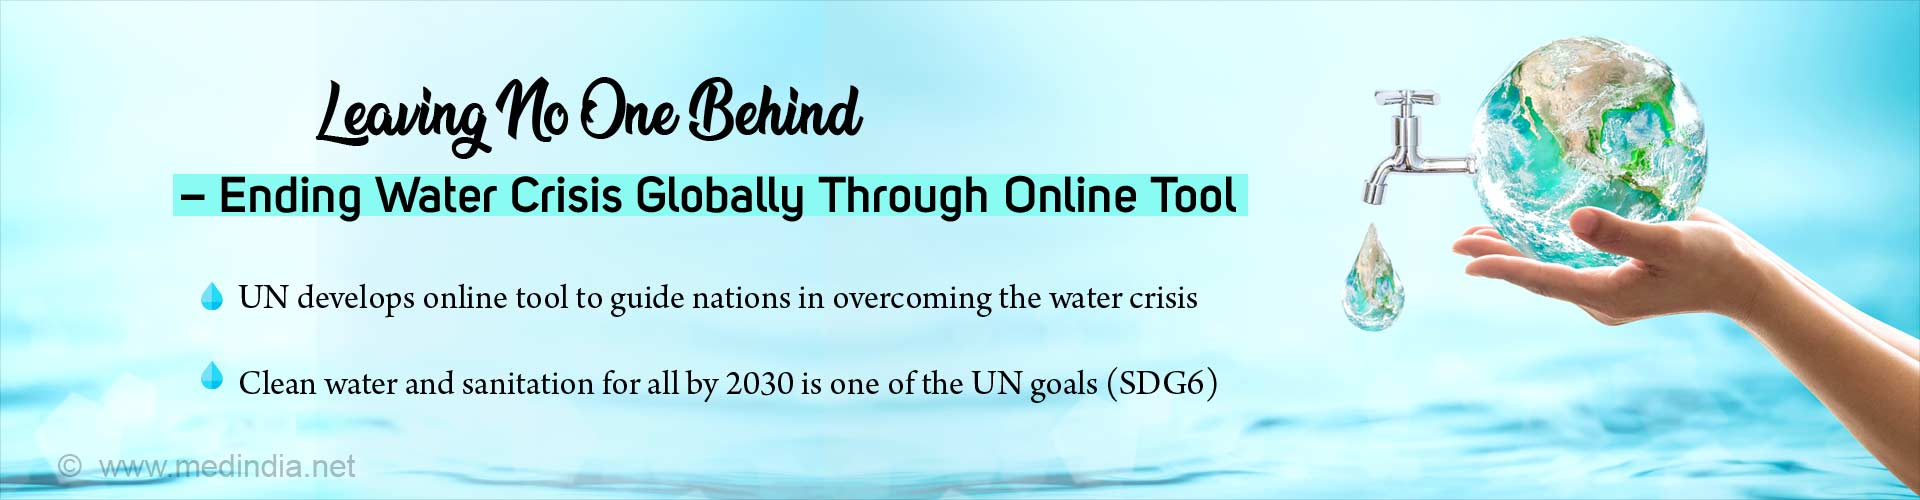 Clean Water and Sanitation For All By 2030